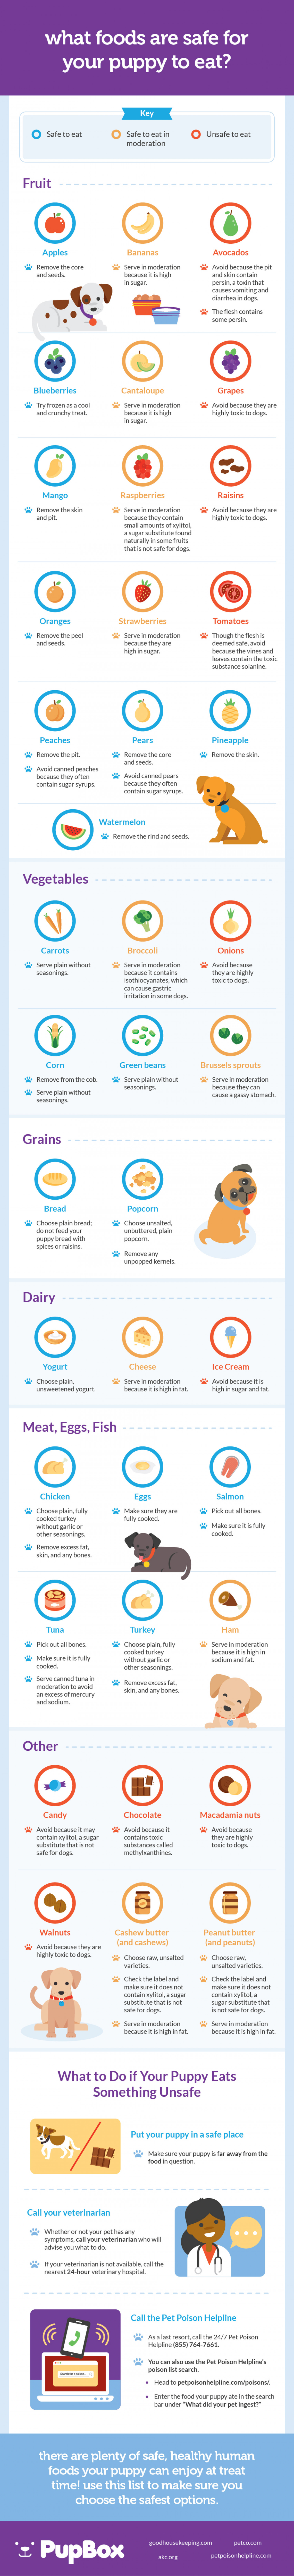 What Foods Are Safe for Your Puppy to Eat? Infographic